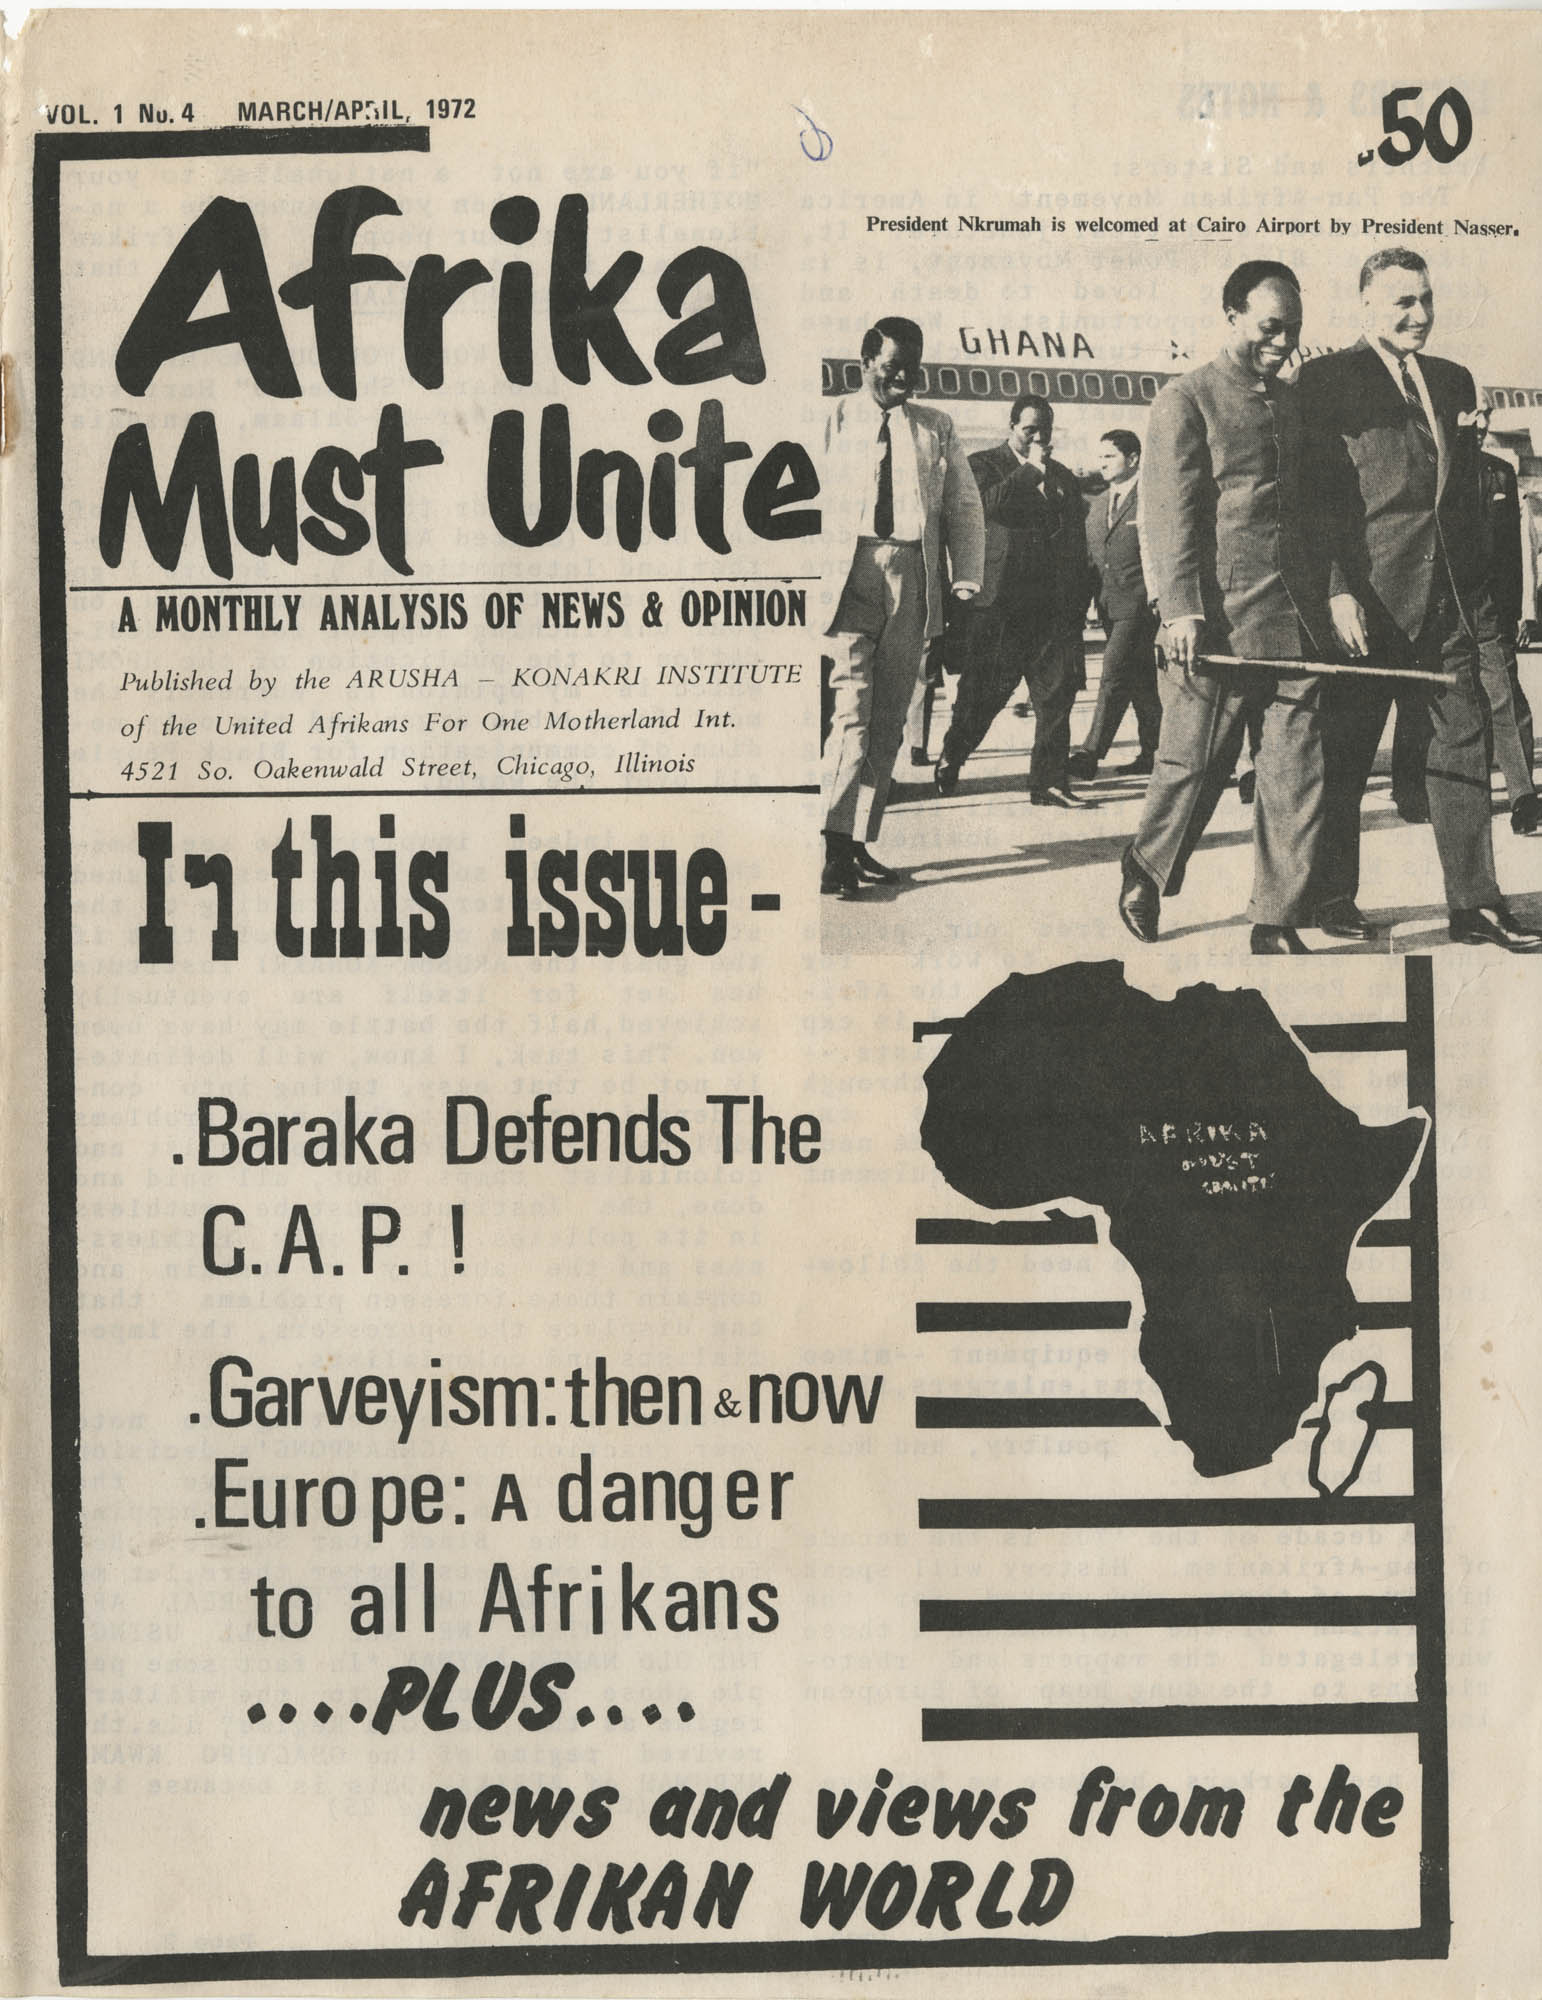 Afrika Must Unite, Vol. 1, No. 4